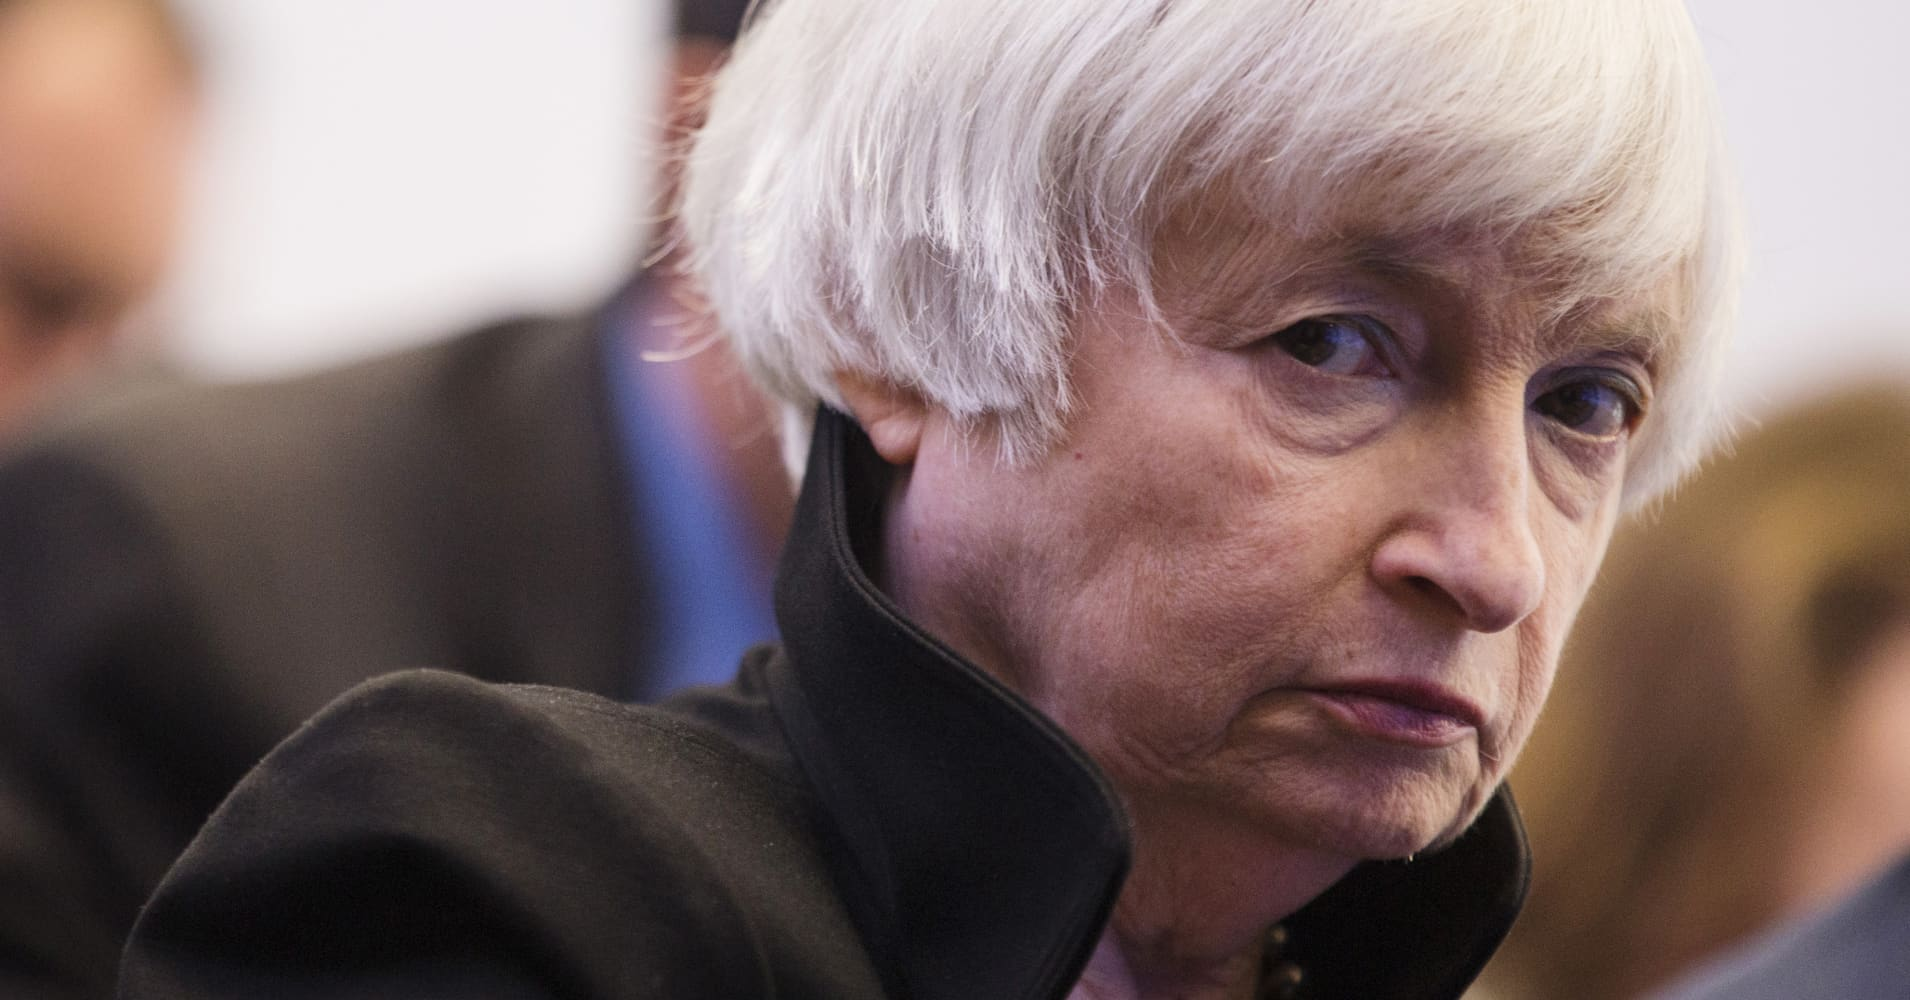 cnbc.com - Kelly Olsen - Ex-Fed Chair Yellen: The recession indicator in the bond market could mean a rate cut not a downturn